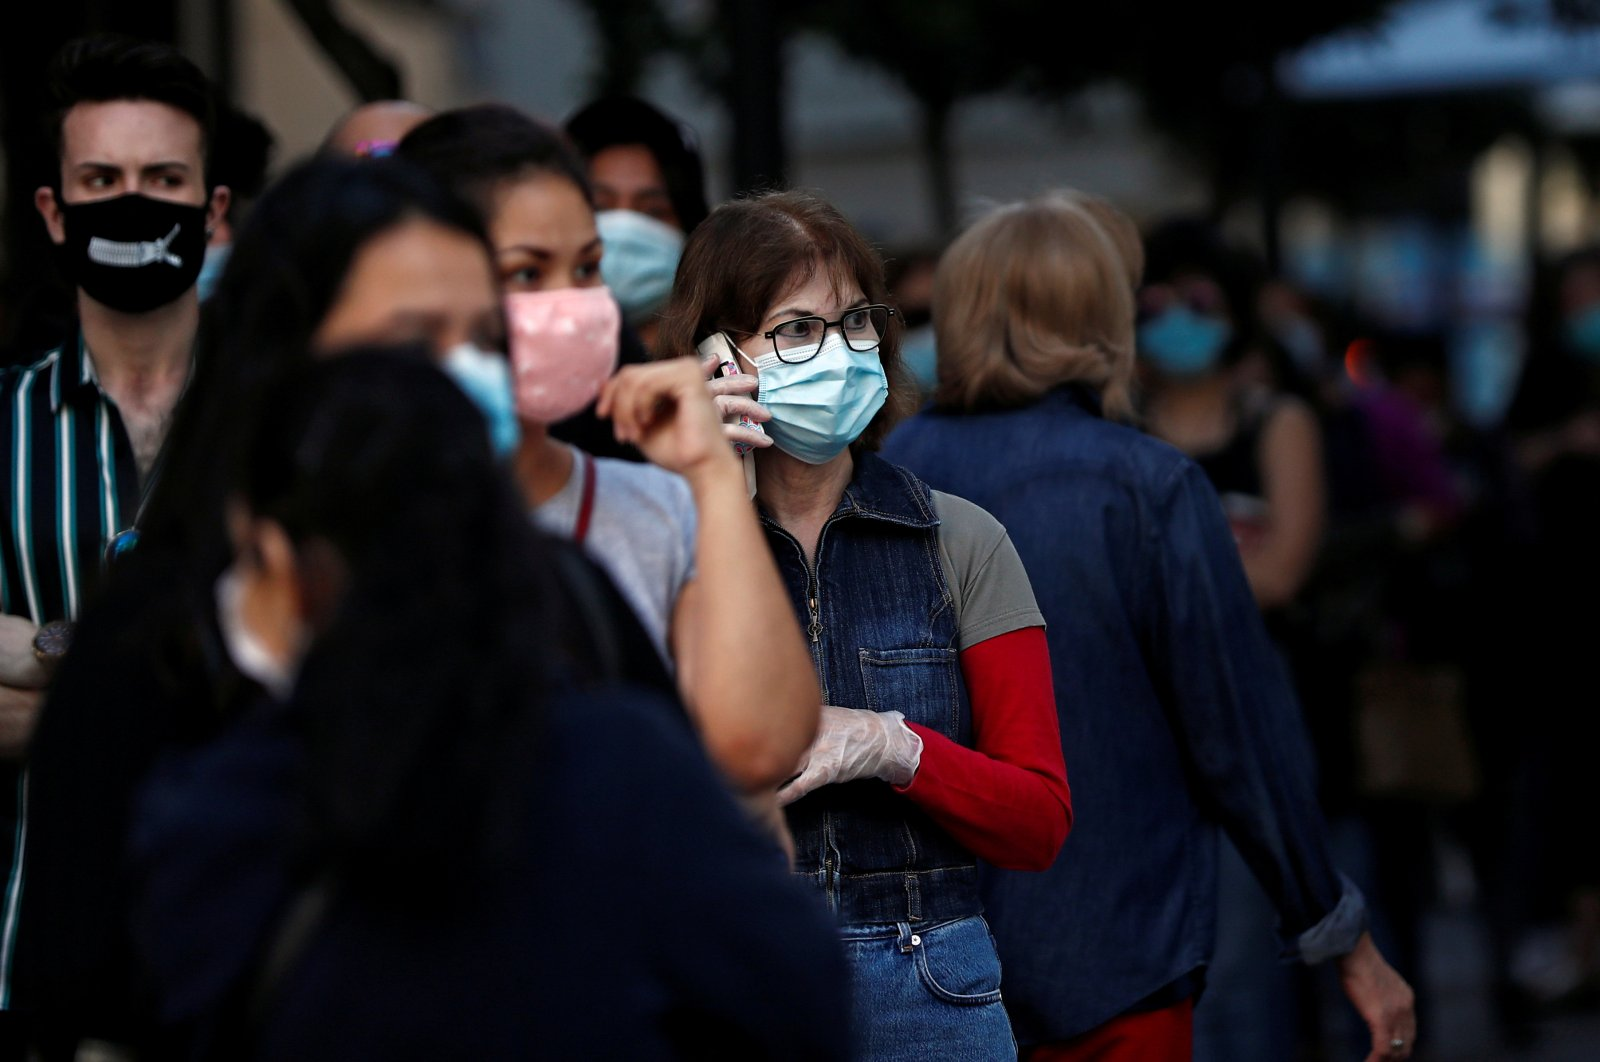 People wearing face masks queue to enter a reopened Primark store as Madrid eases lockdown restrictions following the coronavirus disease (COVID-19) outbreak, in Madrid, Spain, June 11, 2020. (Reuters Photo)